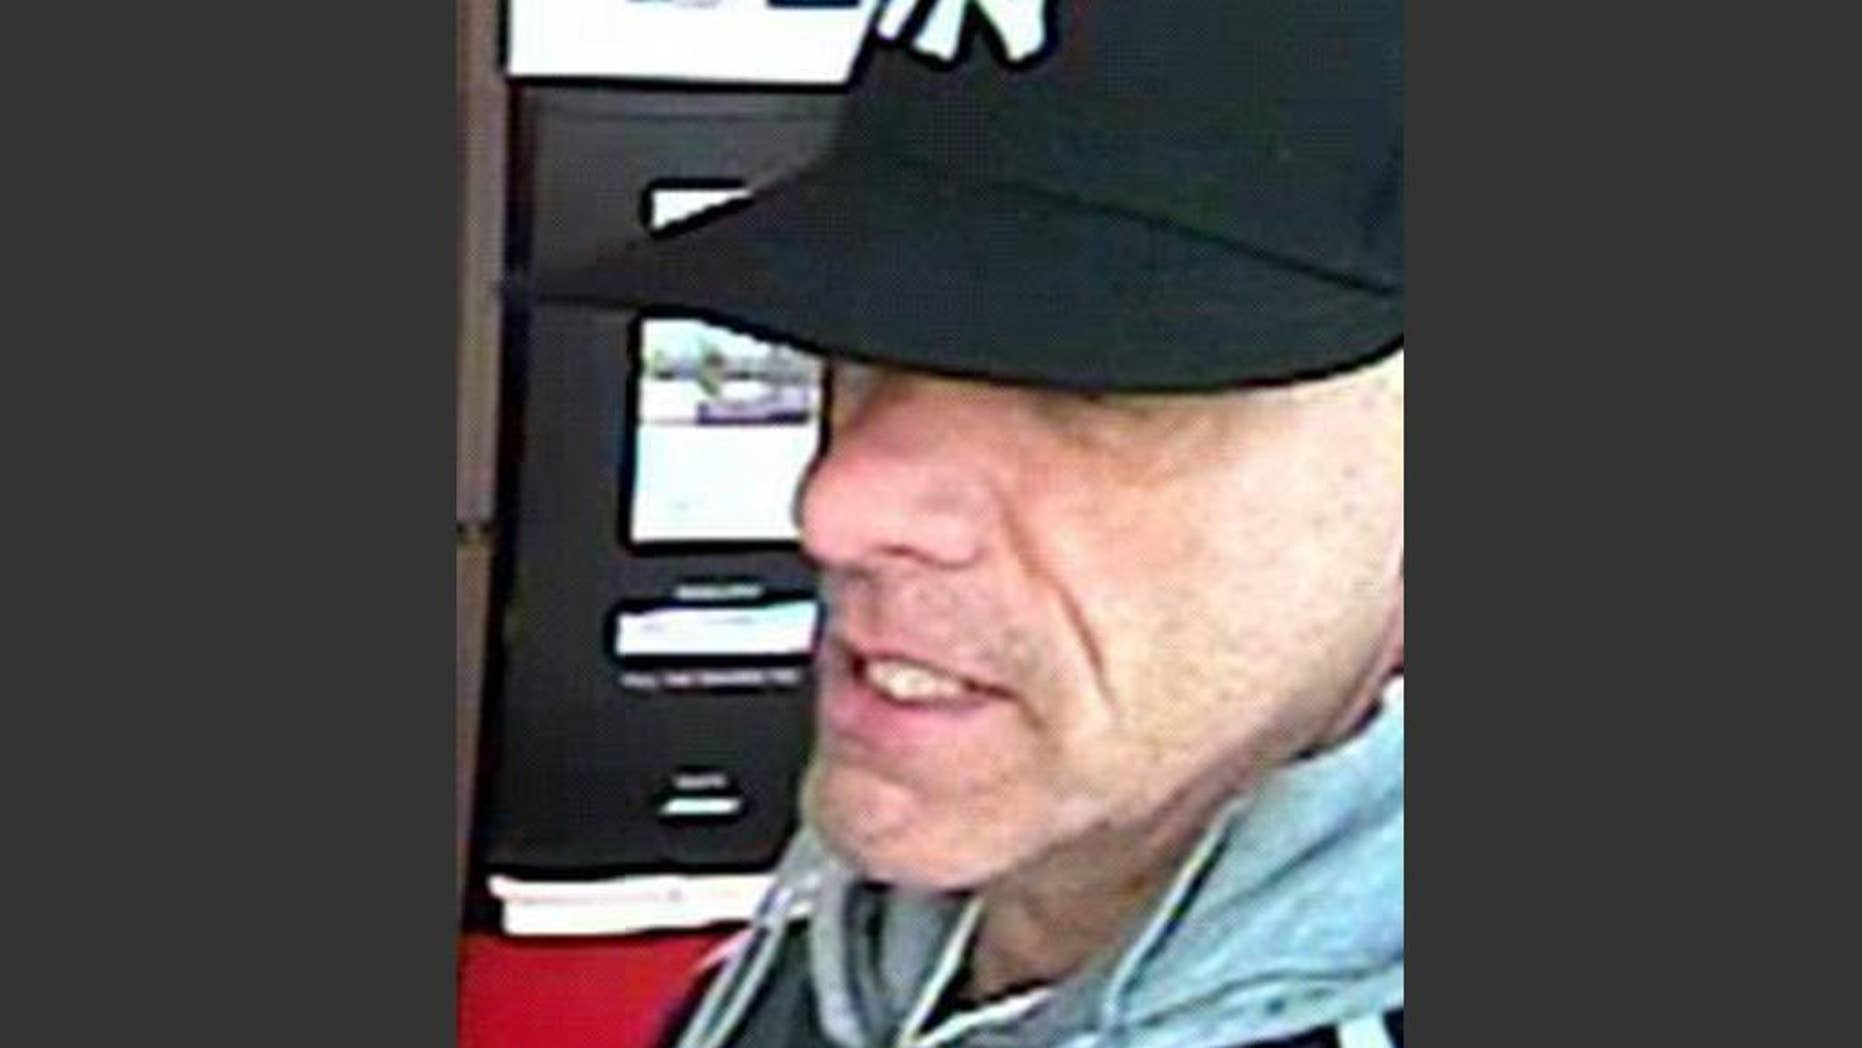 "This undated surveillance photo provided by the York Regional Police shows a bank robbery suspect, not identified by name, but nicknamed ""The Vaulter Bandit."" On Tuesday, Sept. 15, 2015, Geneva police arrested the suspect, who had been sought under an international arrest warrant issued by Canada in connection with 22 bank robberies over the last five years. (Courtesy of York Regional Police/The Canadian Press via AP)"